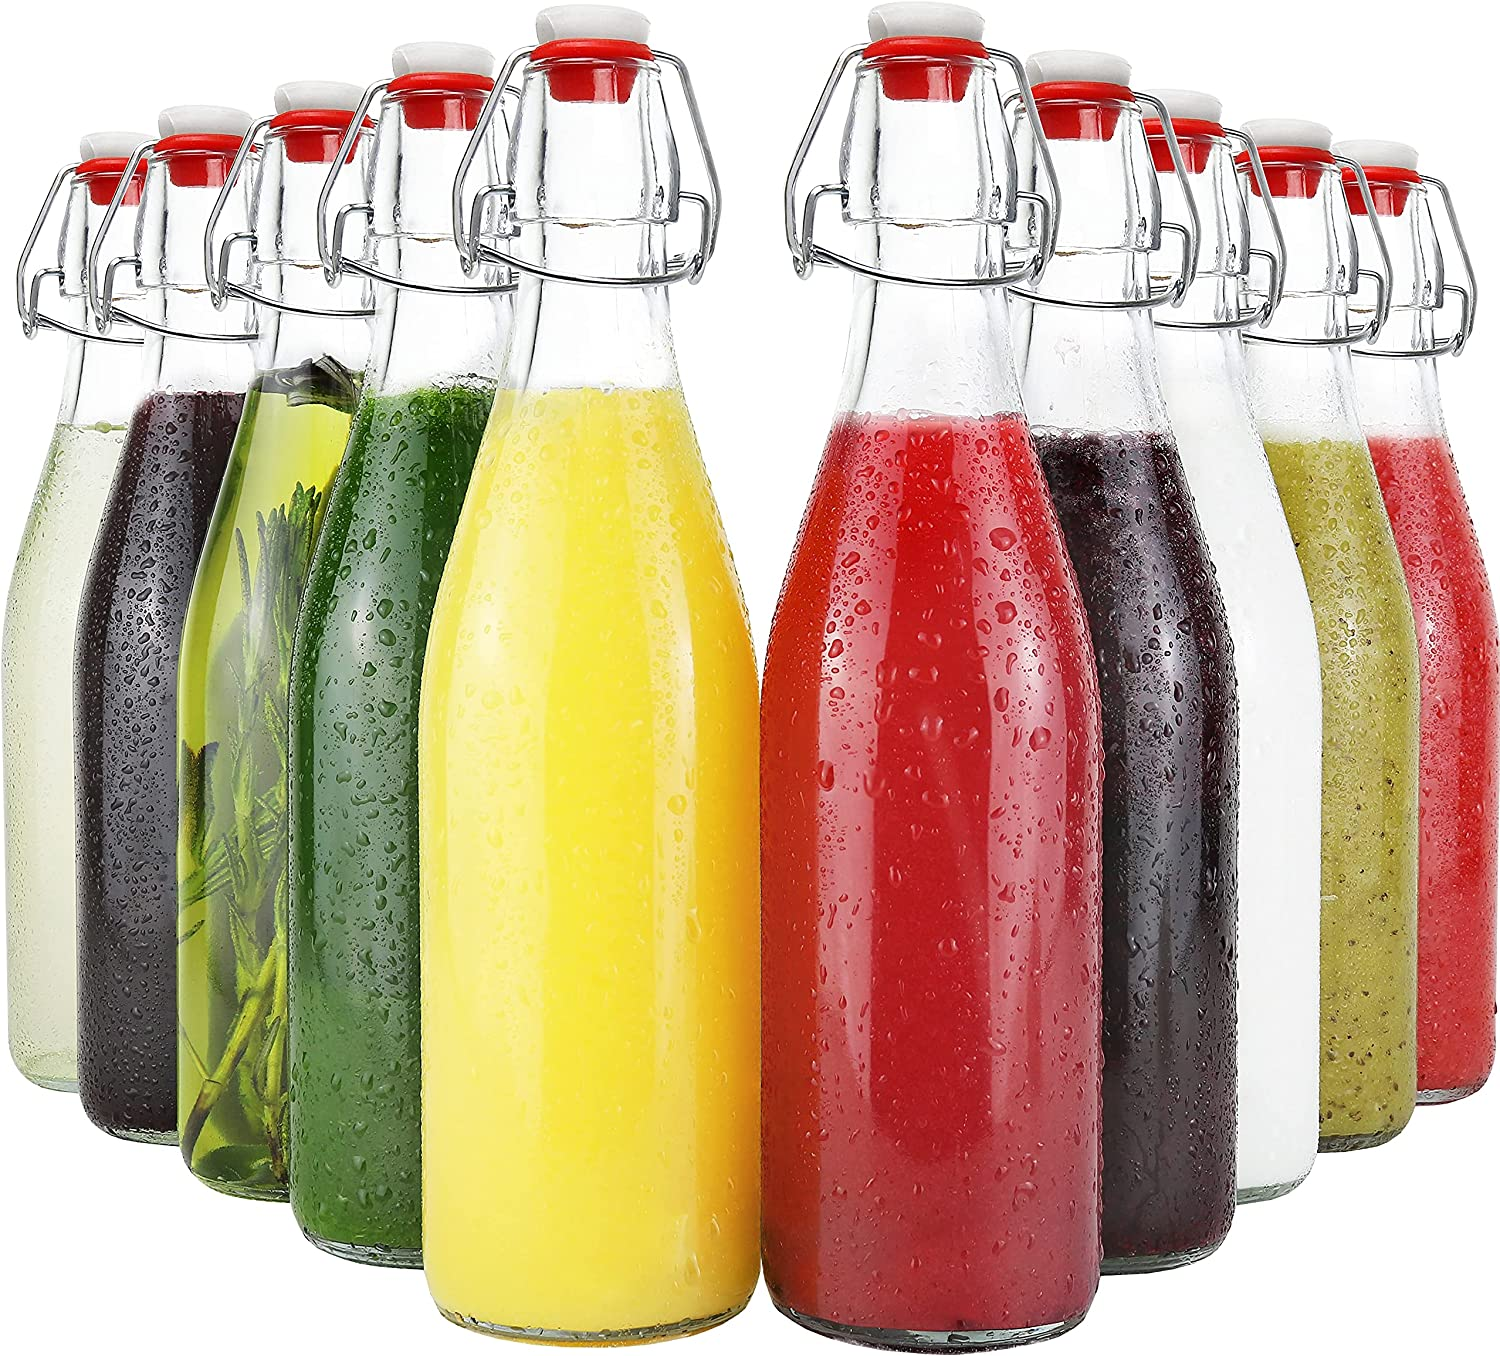 Swing Top Seasonal Wrap Introduction Glass Max 56% OFF Bottles with Caps Stop Leak Lid Airtight Proof